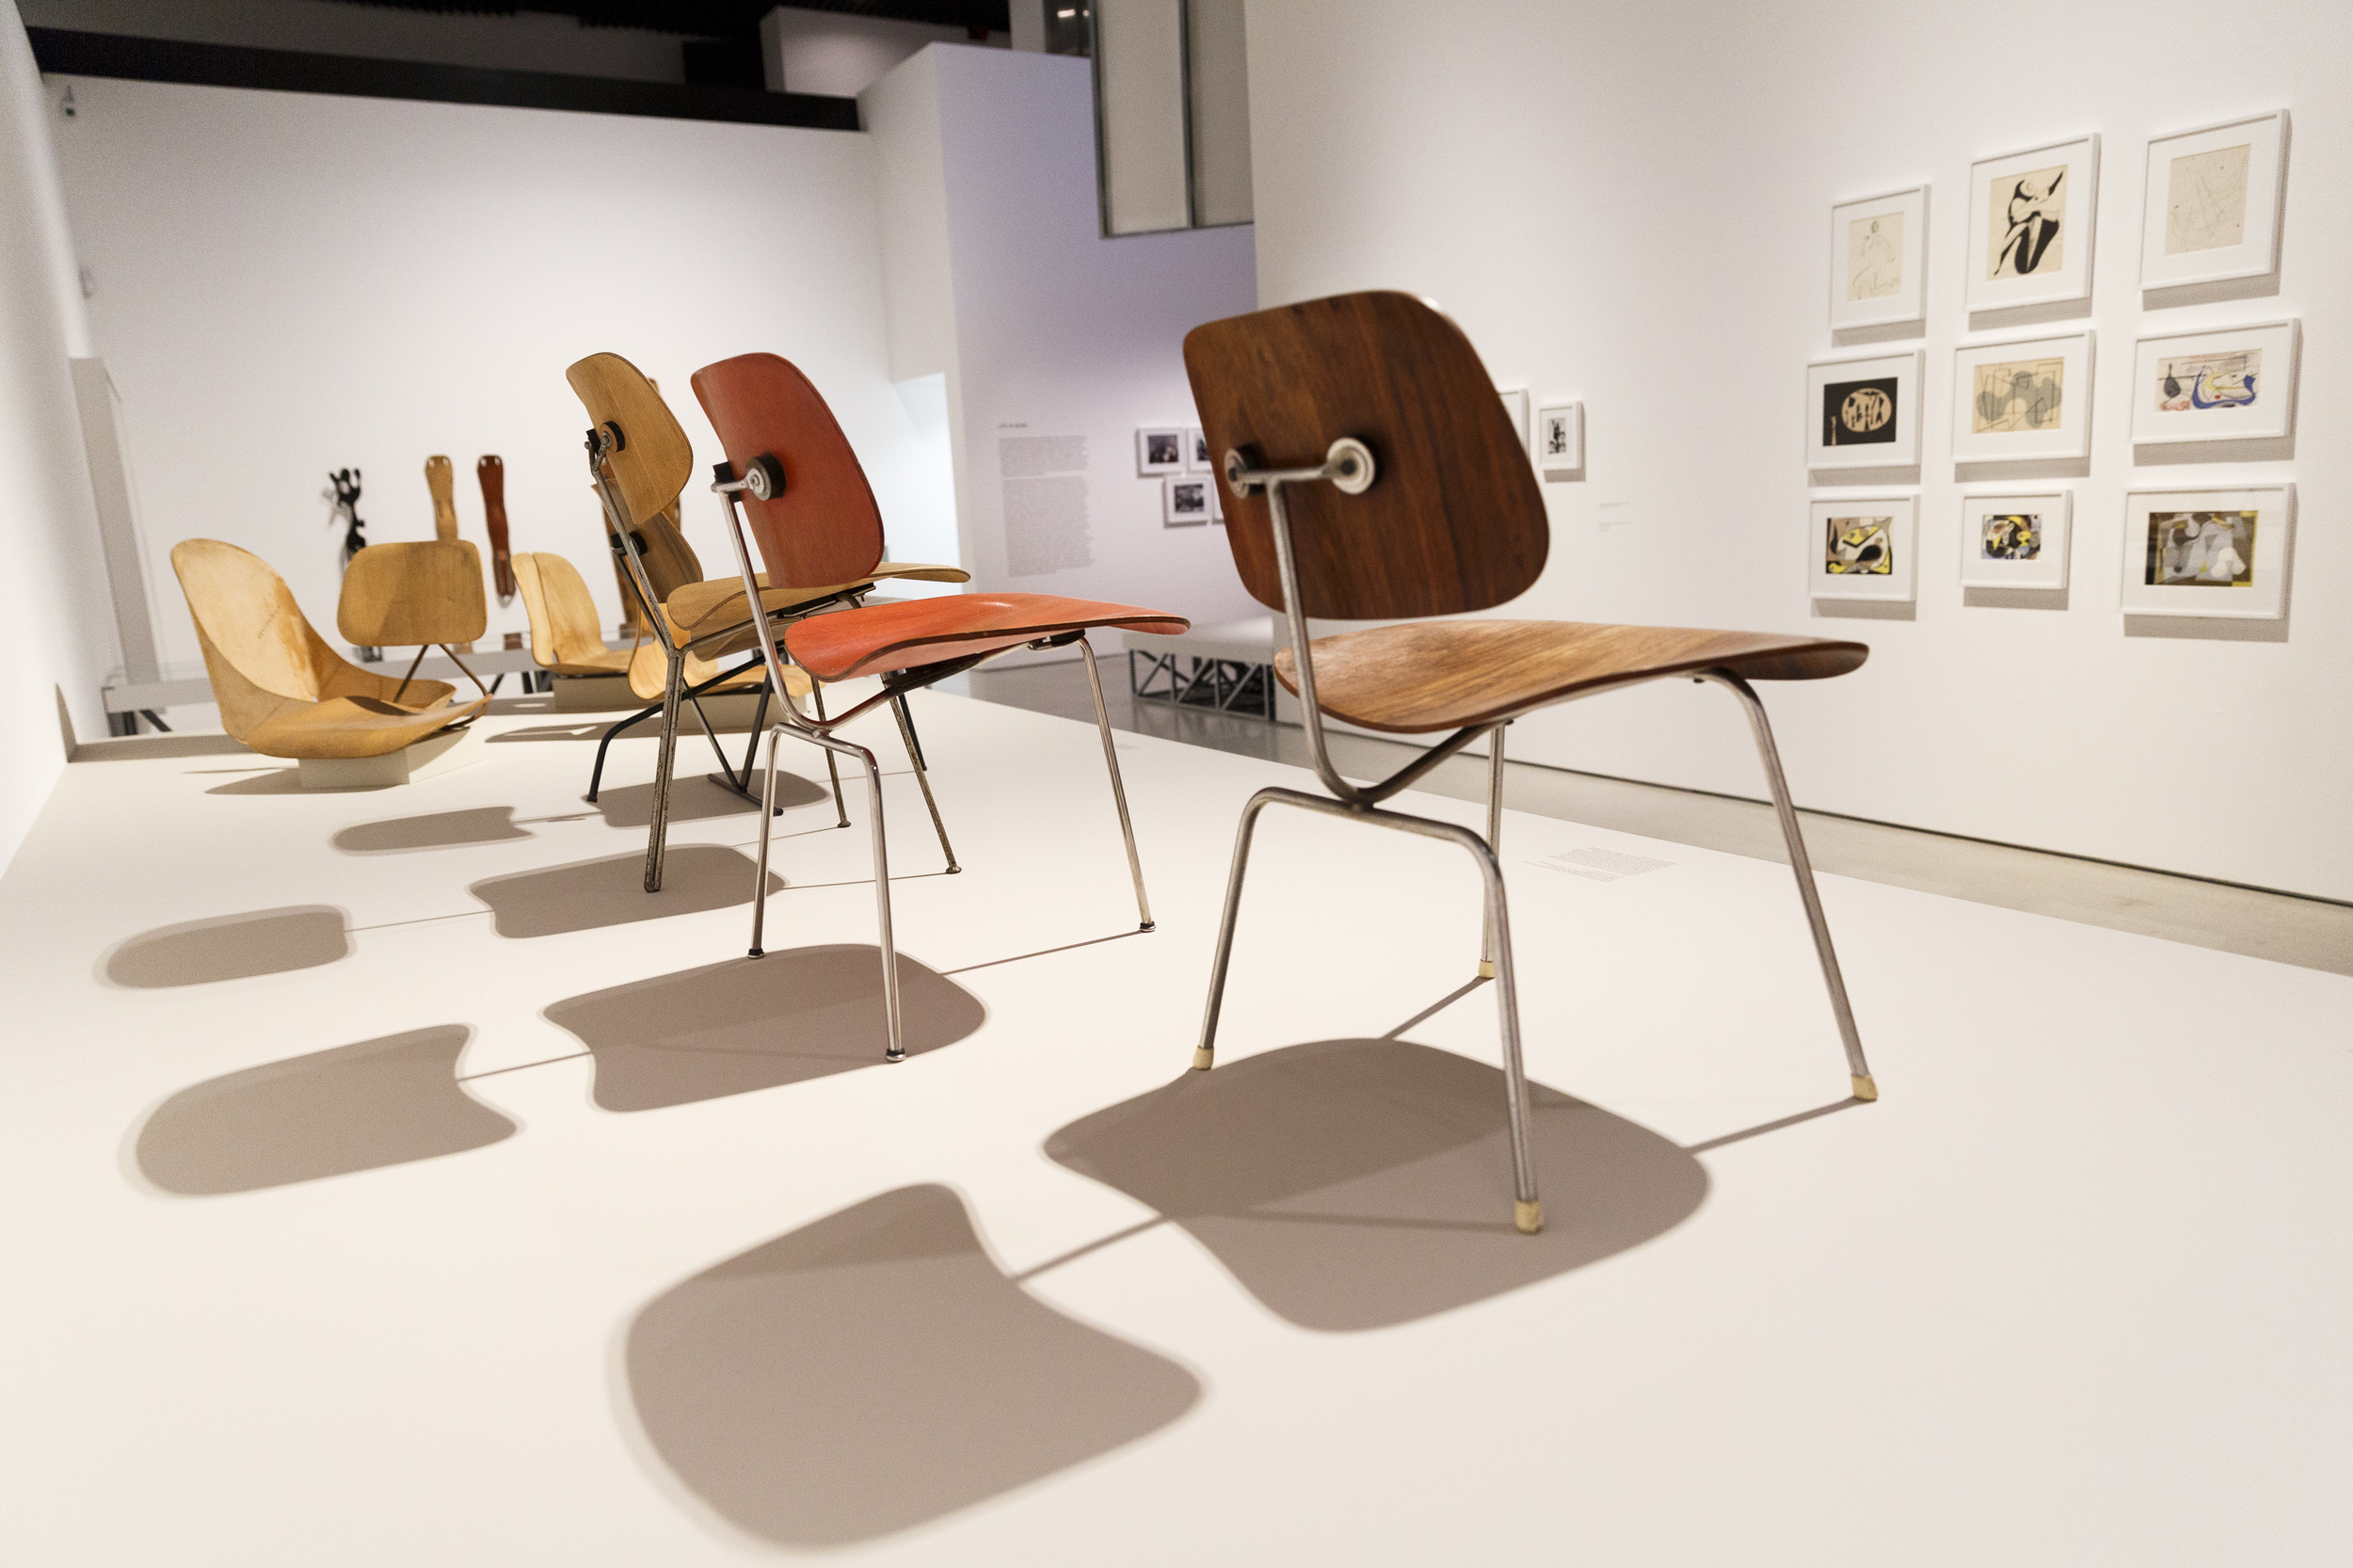 5-the-world-of-charles-and-ray-eames.jpeg